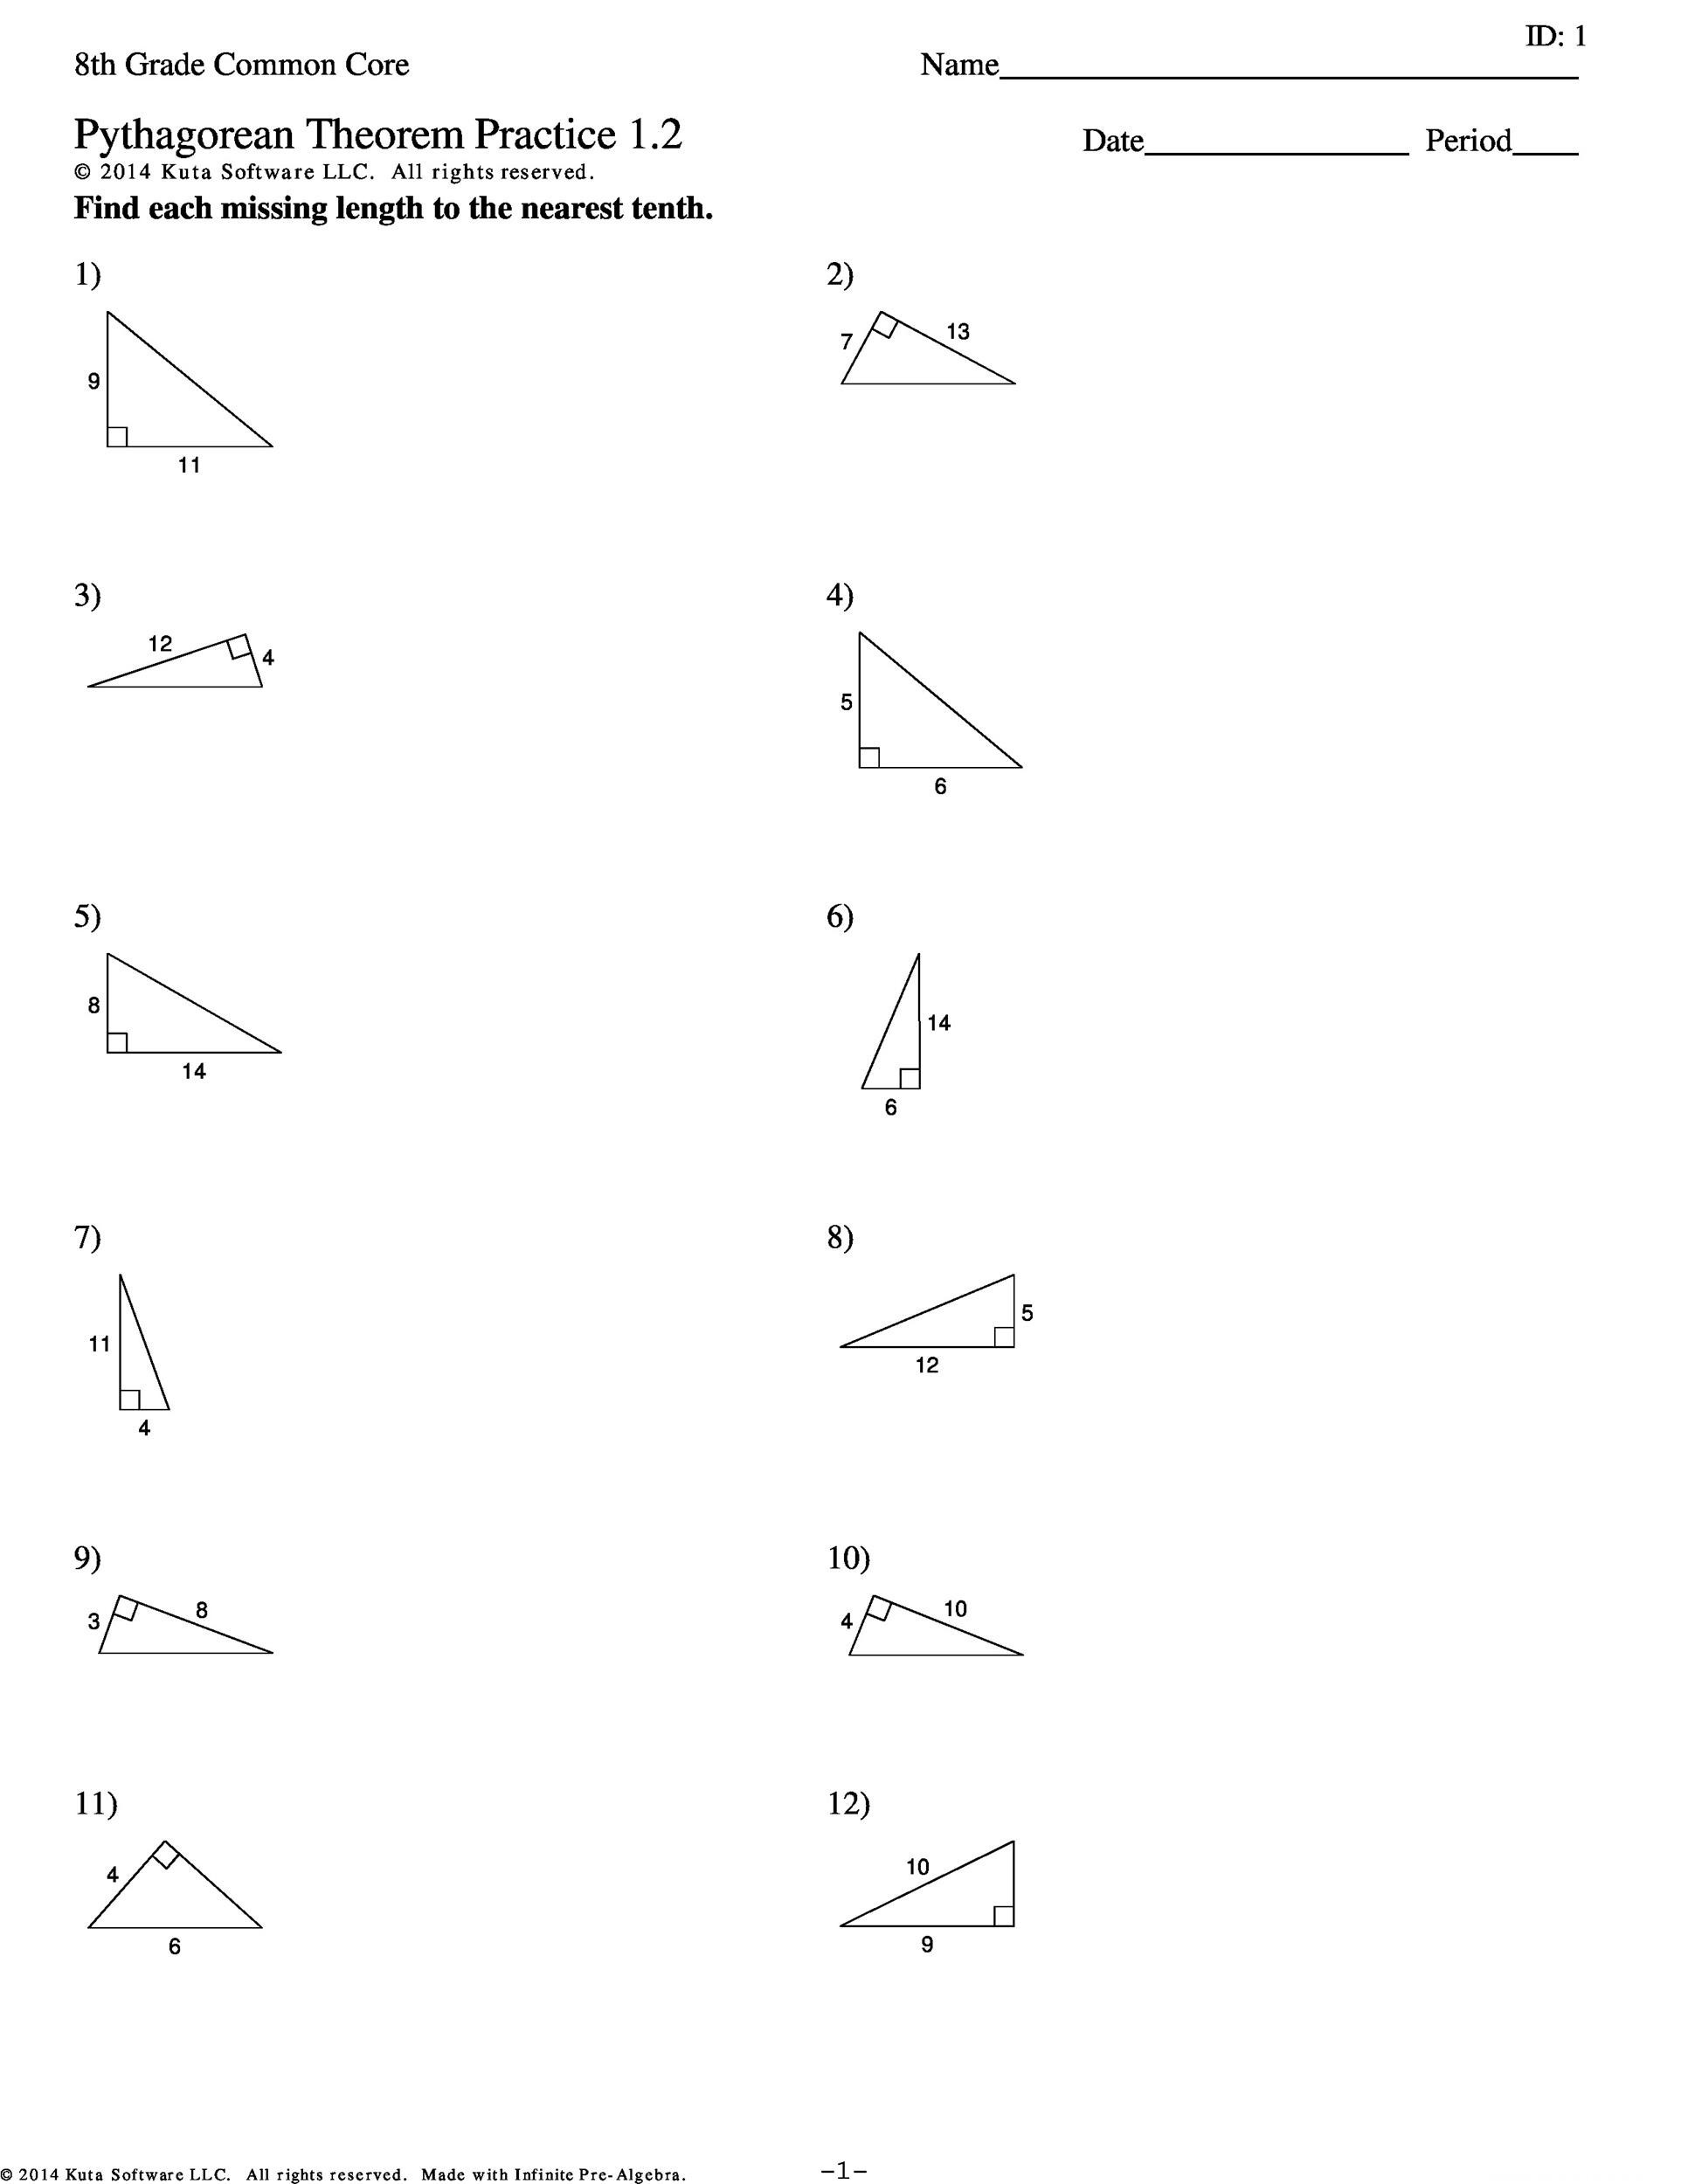 Pythagorean Theorem on multi step equations with fractions worksheet